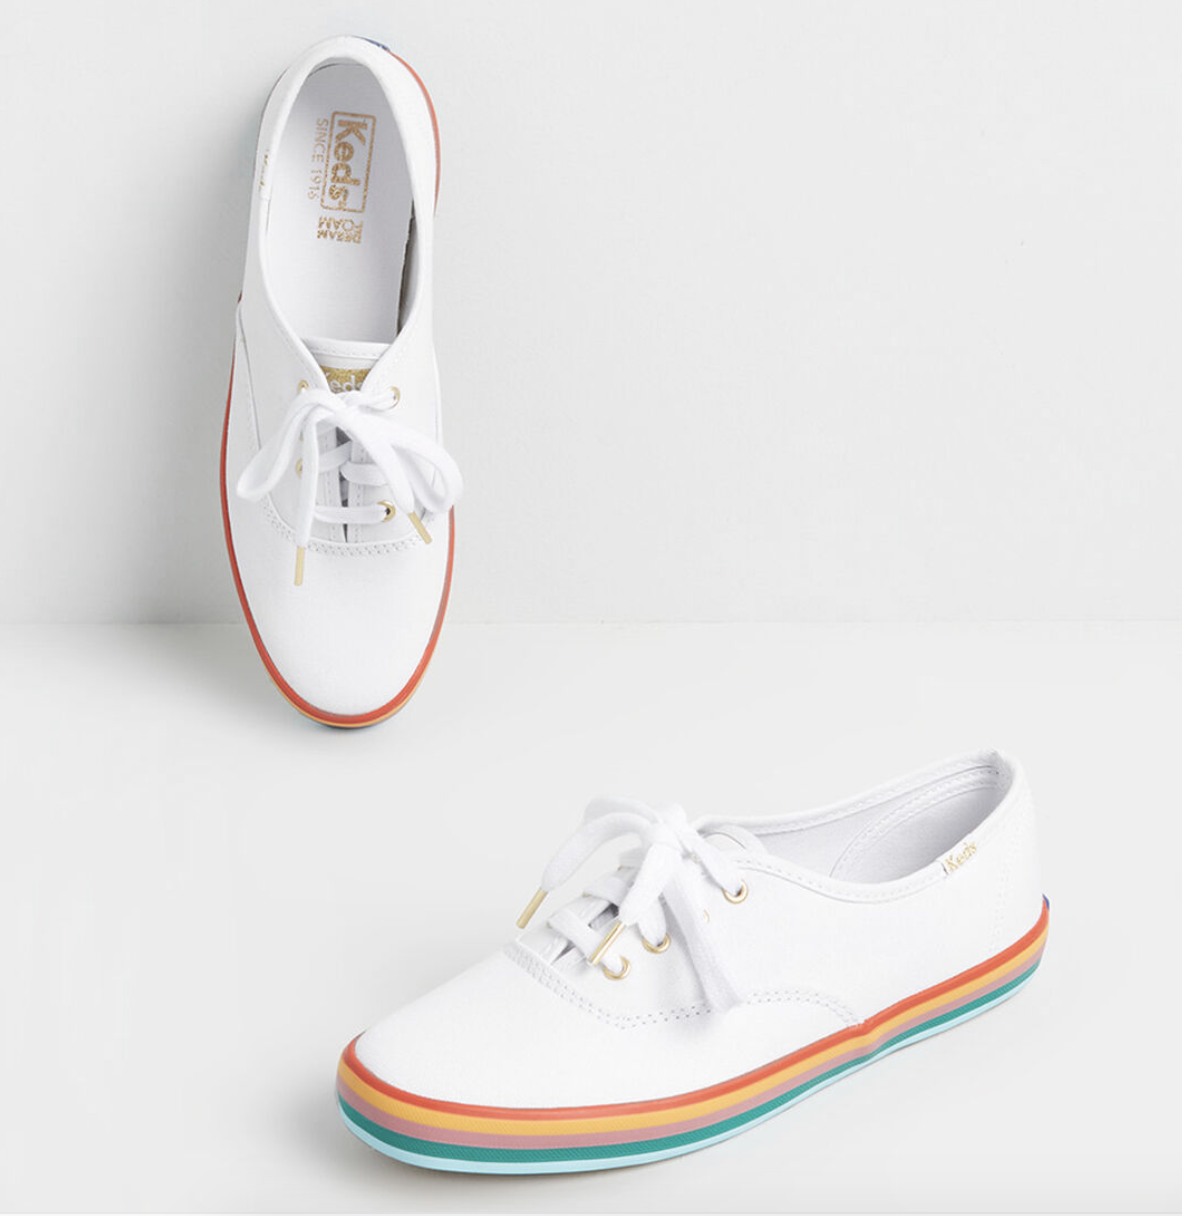 A pair of white Keds with pastel rainbow bottoms